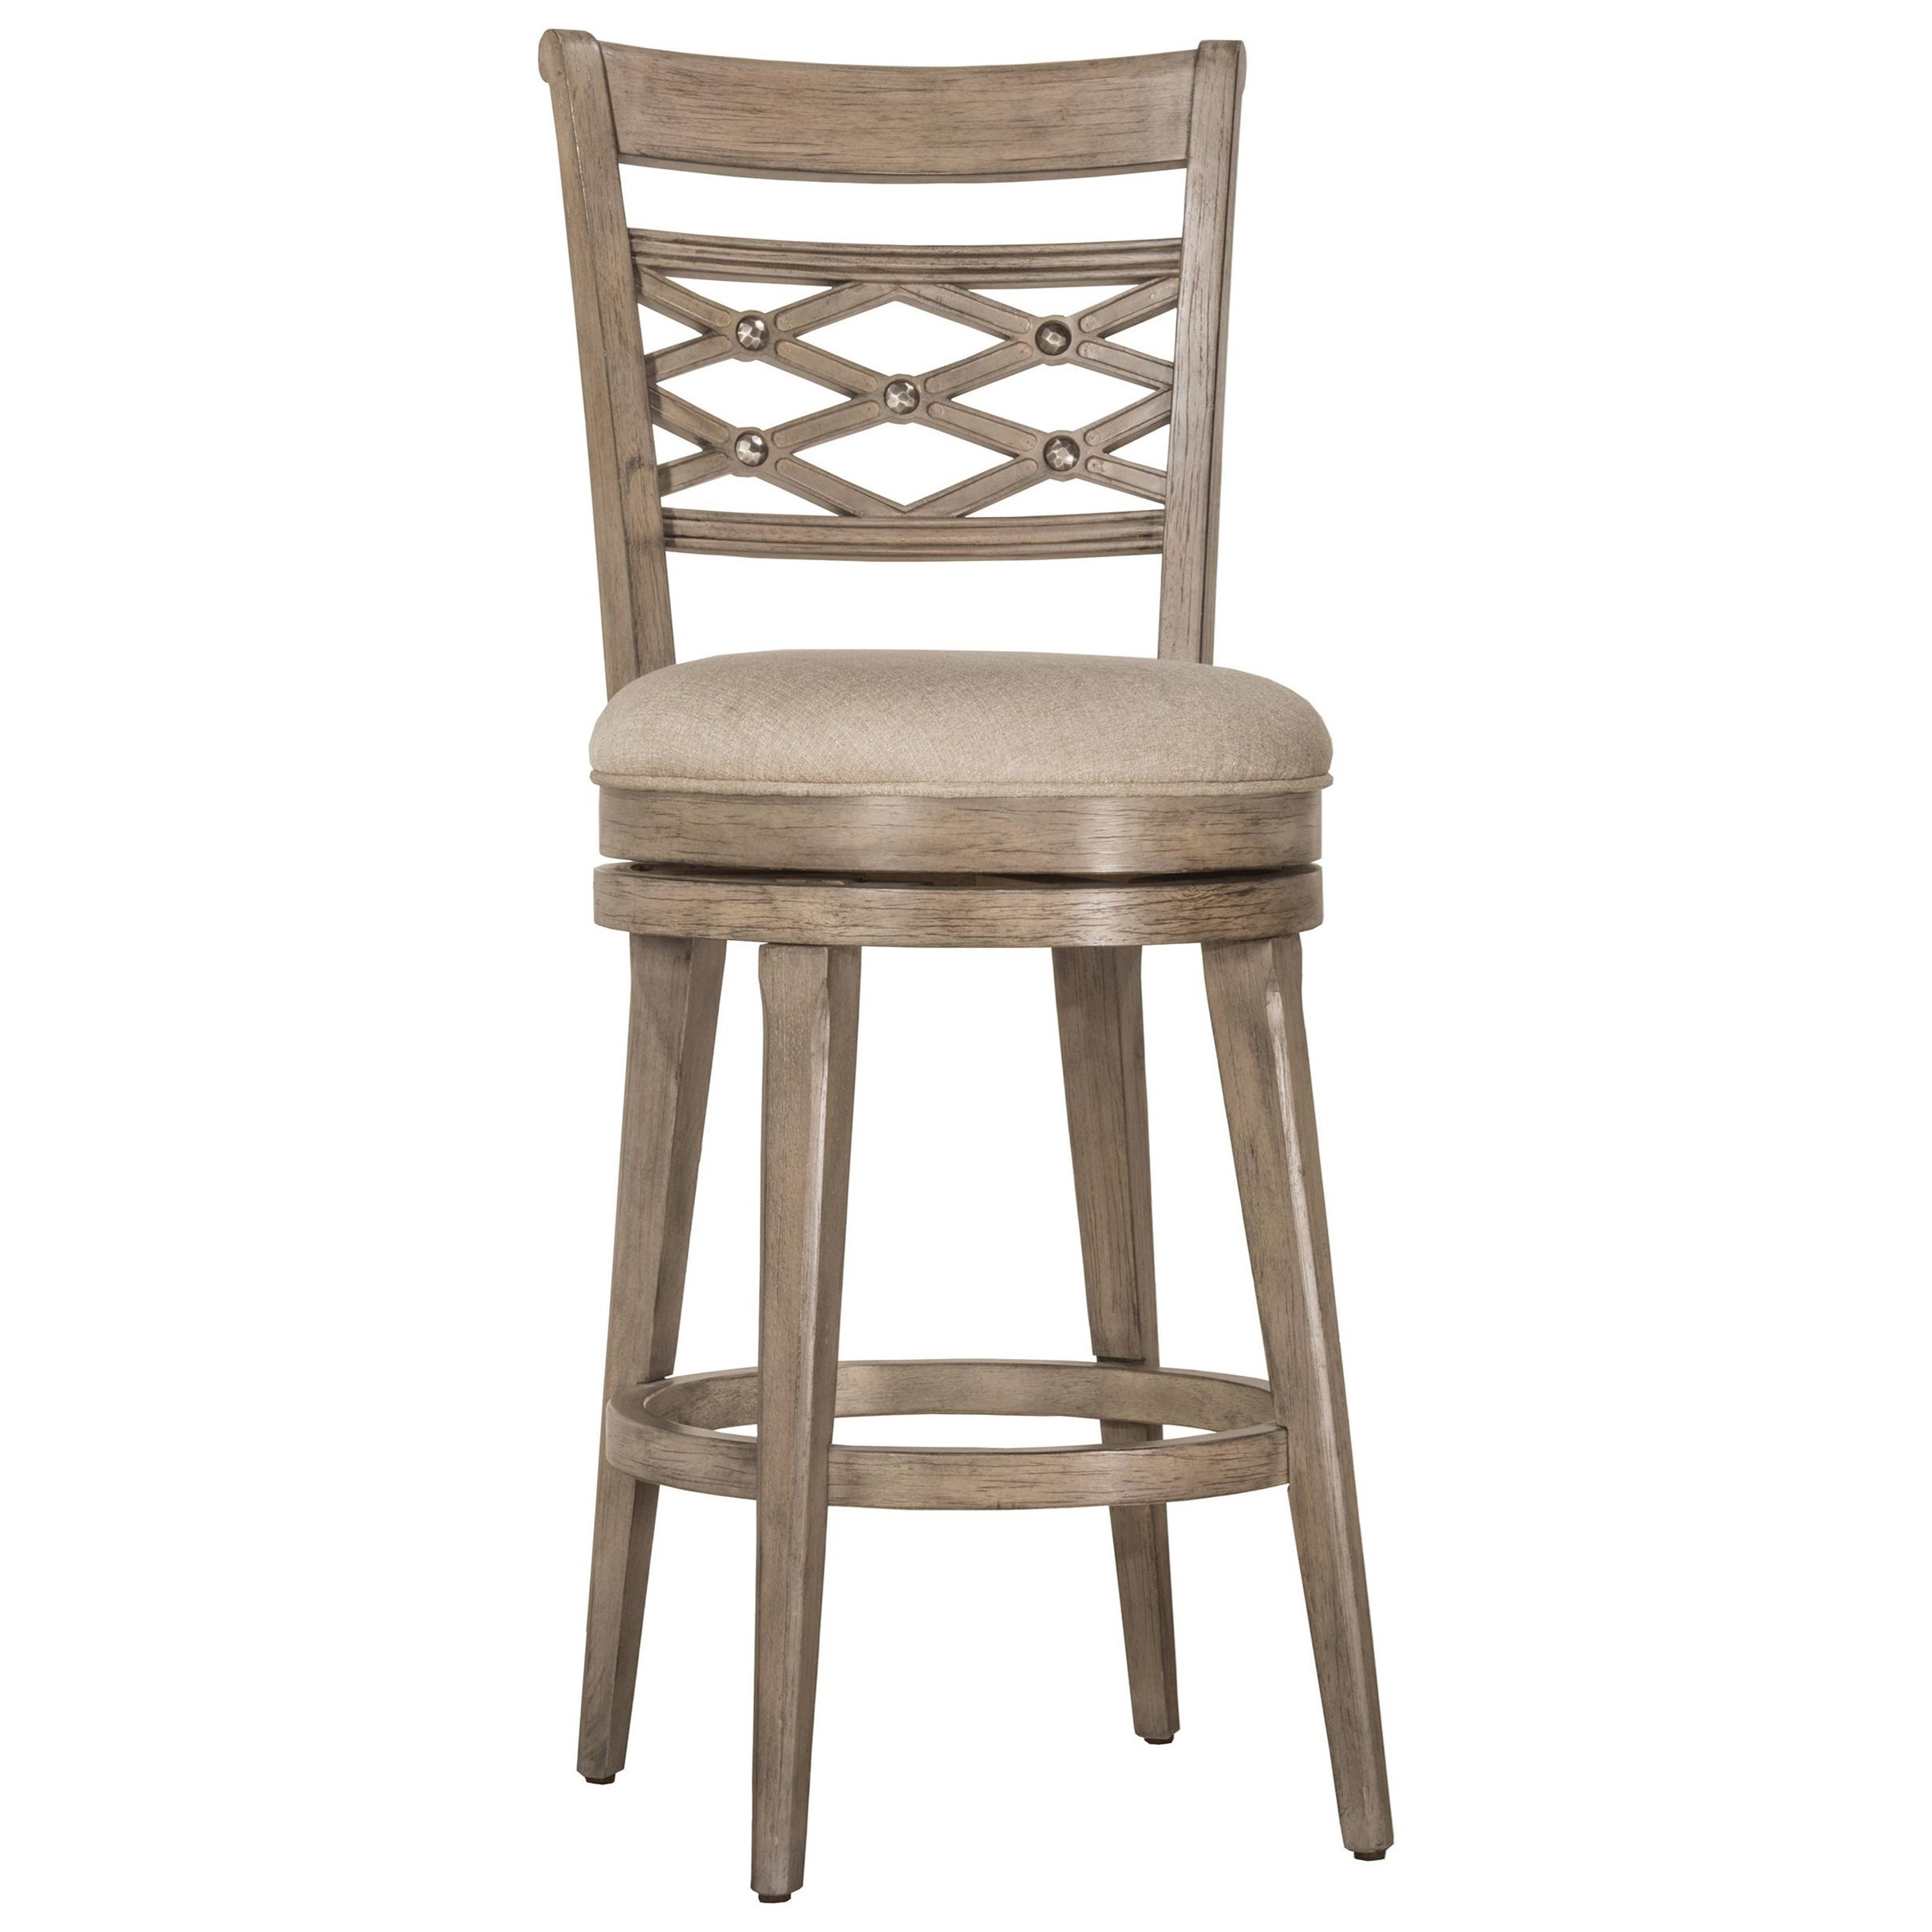 Upholstered Bar Chairs Hillsdale Wood Stools Upholstered Swivel Counter Stool